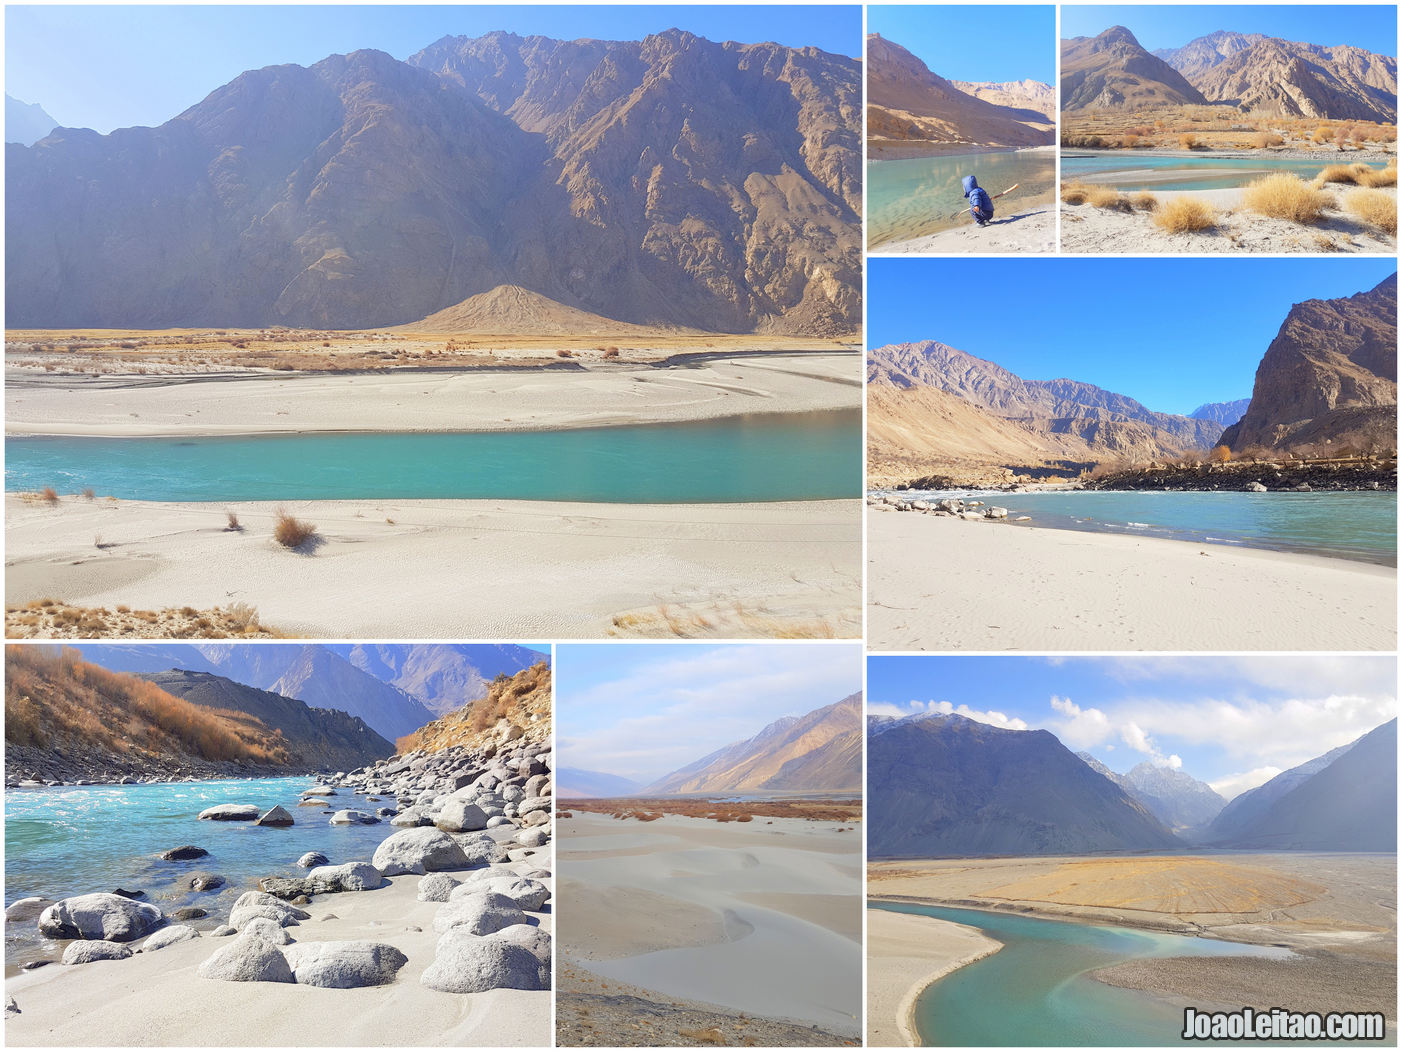 SANDY BEACHES WAKHAN